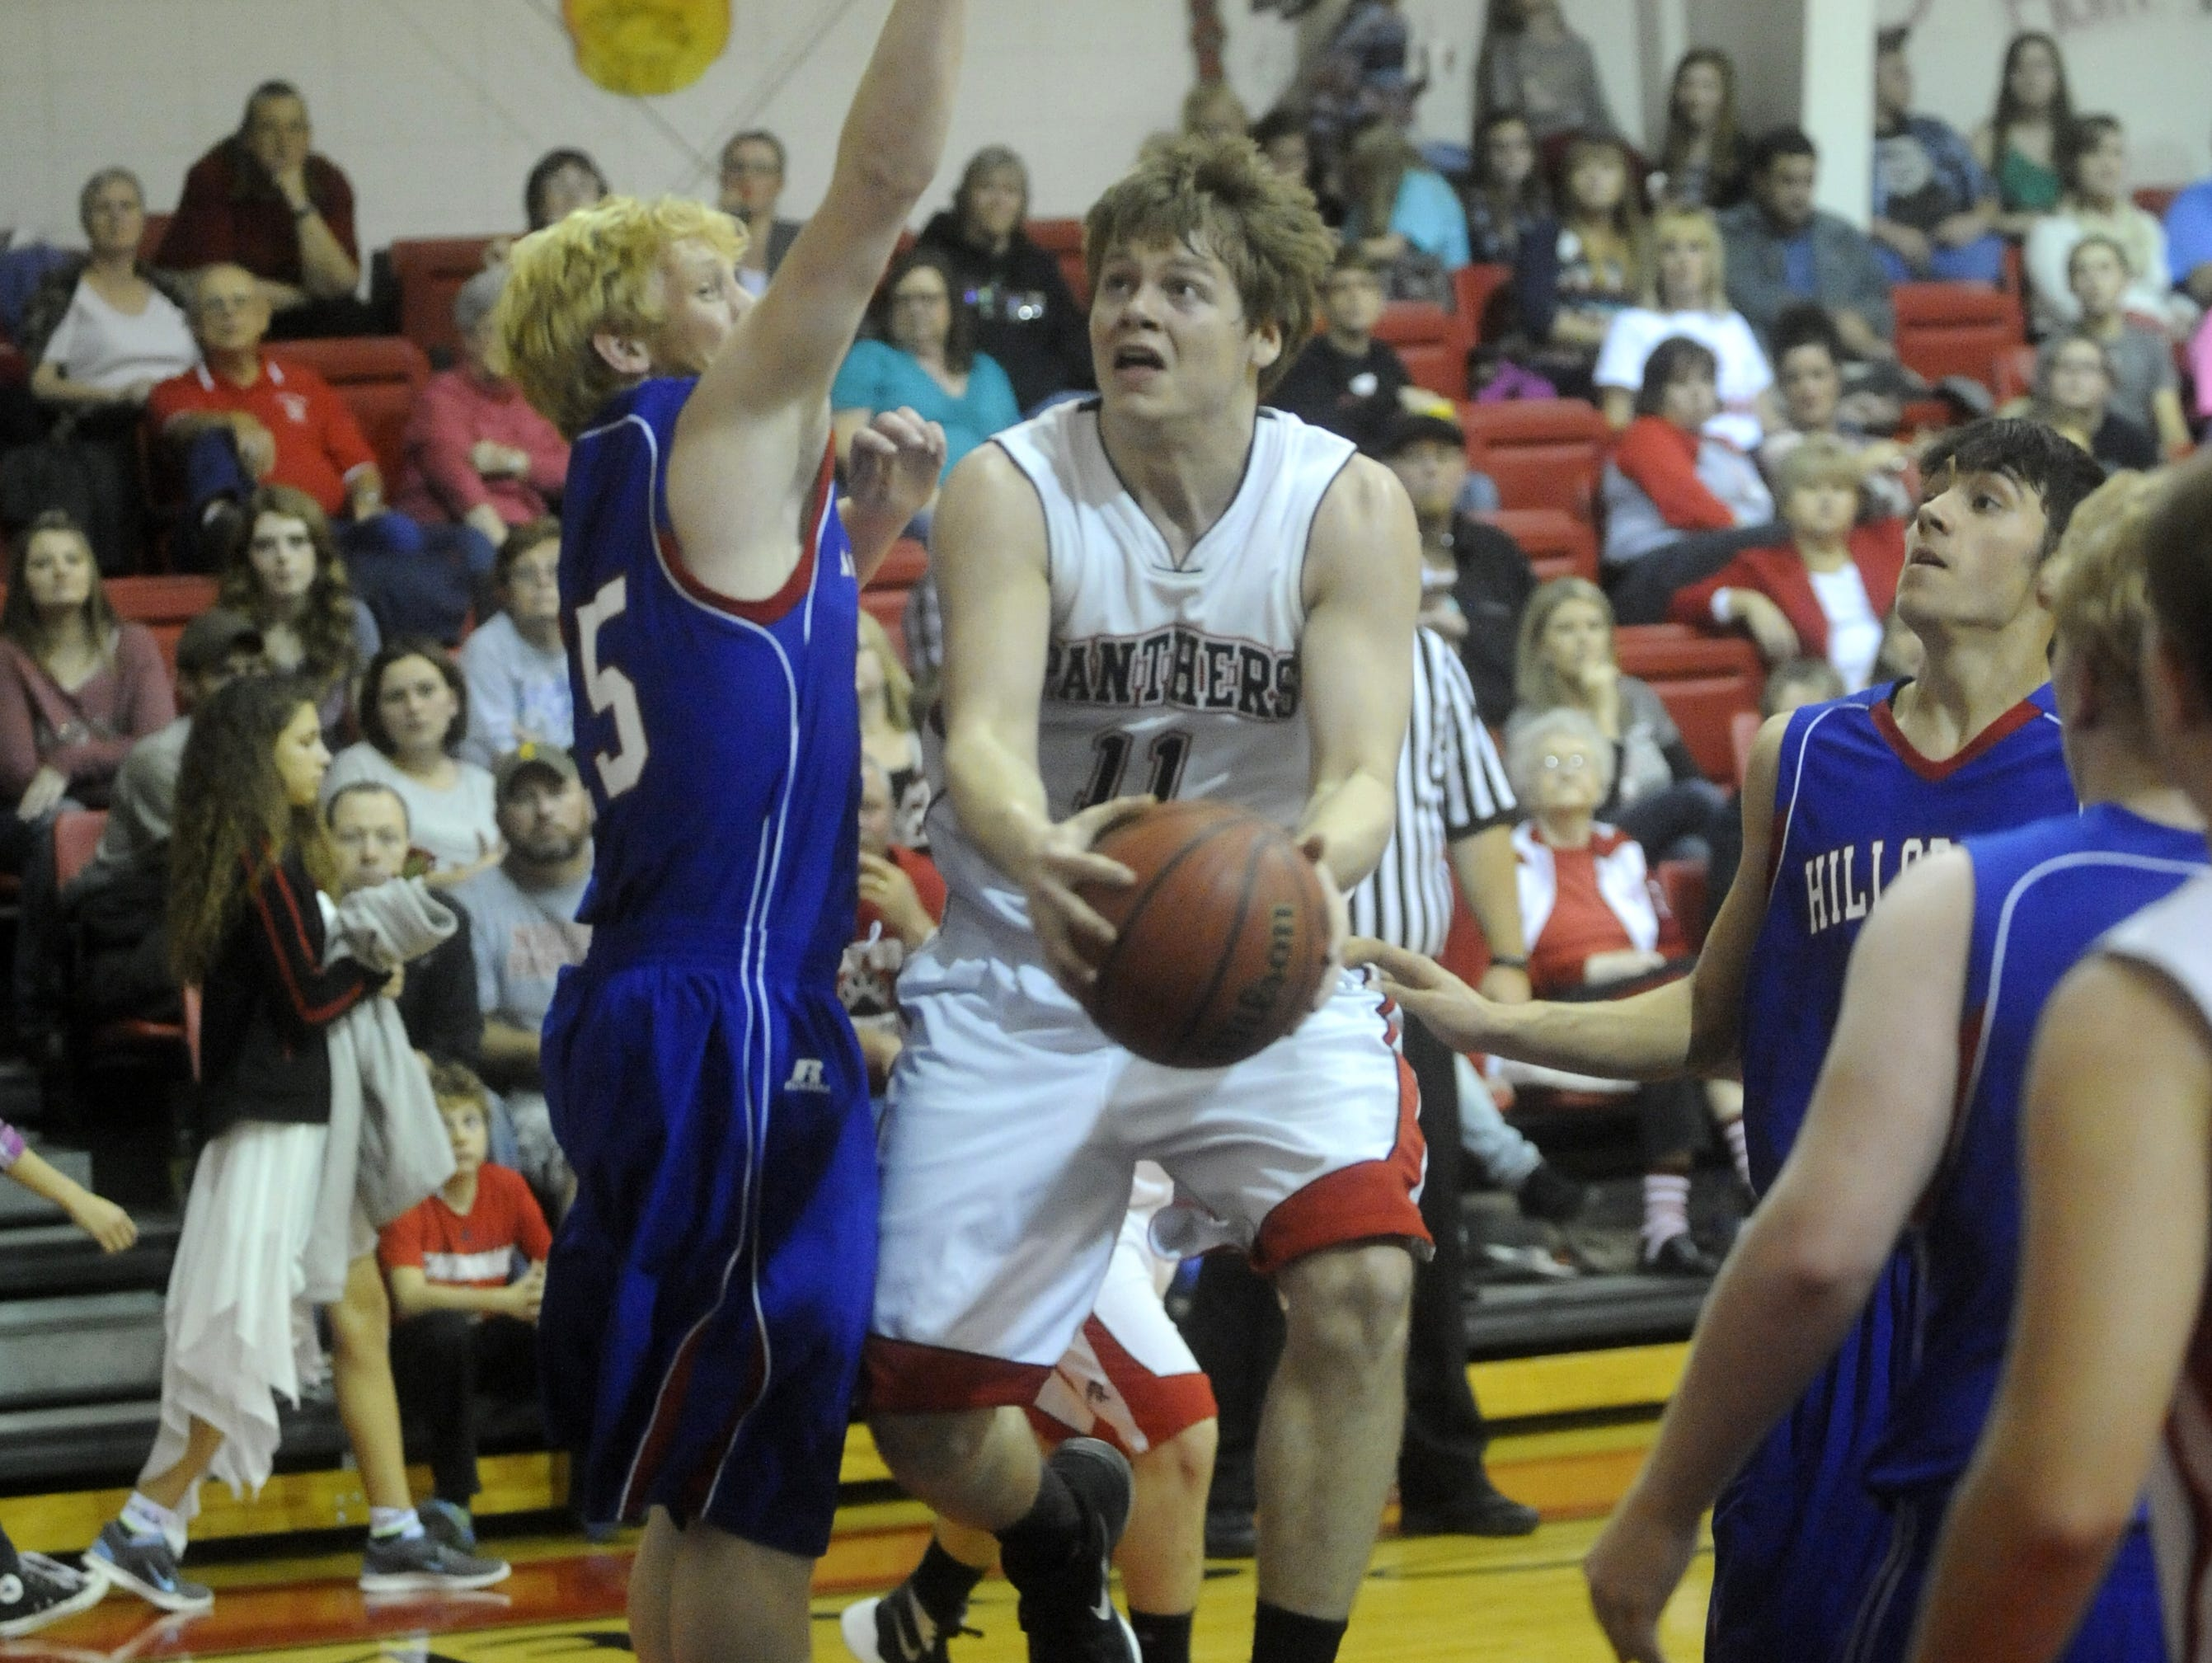 Norfork's Travis Lewis goes up for two during the Panthers' 51-18 win over Hillcrest on Friday night.